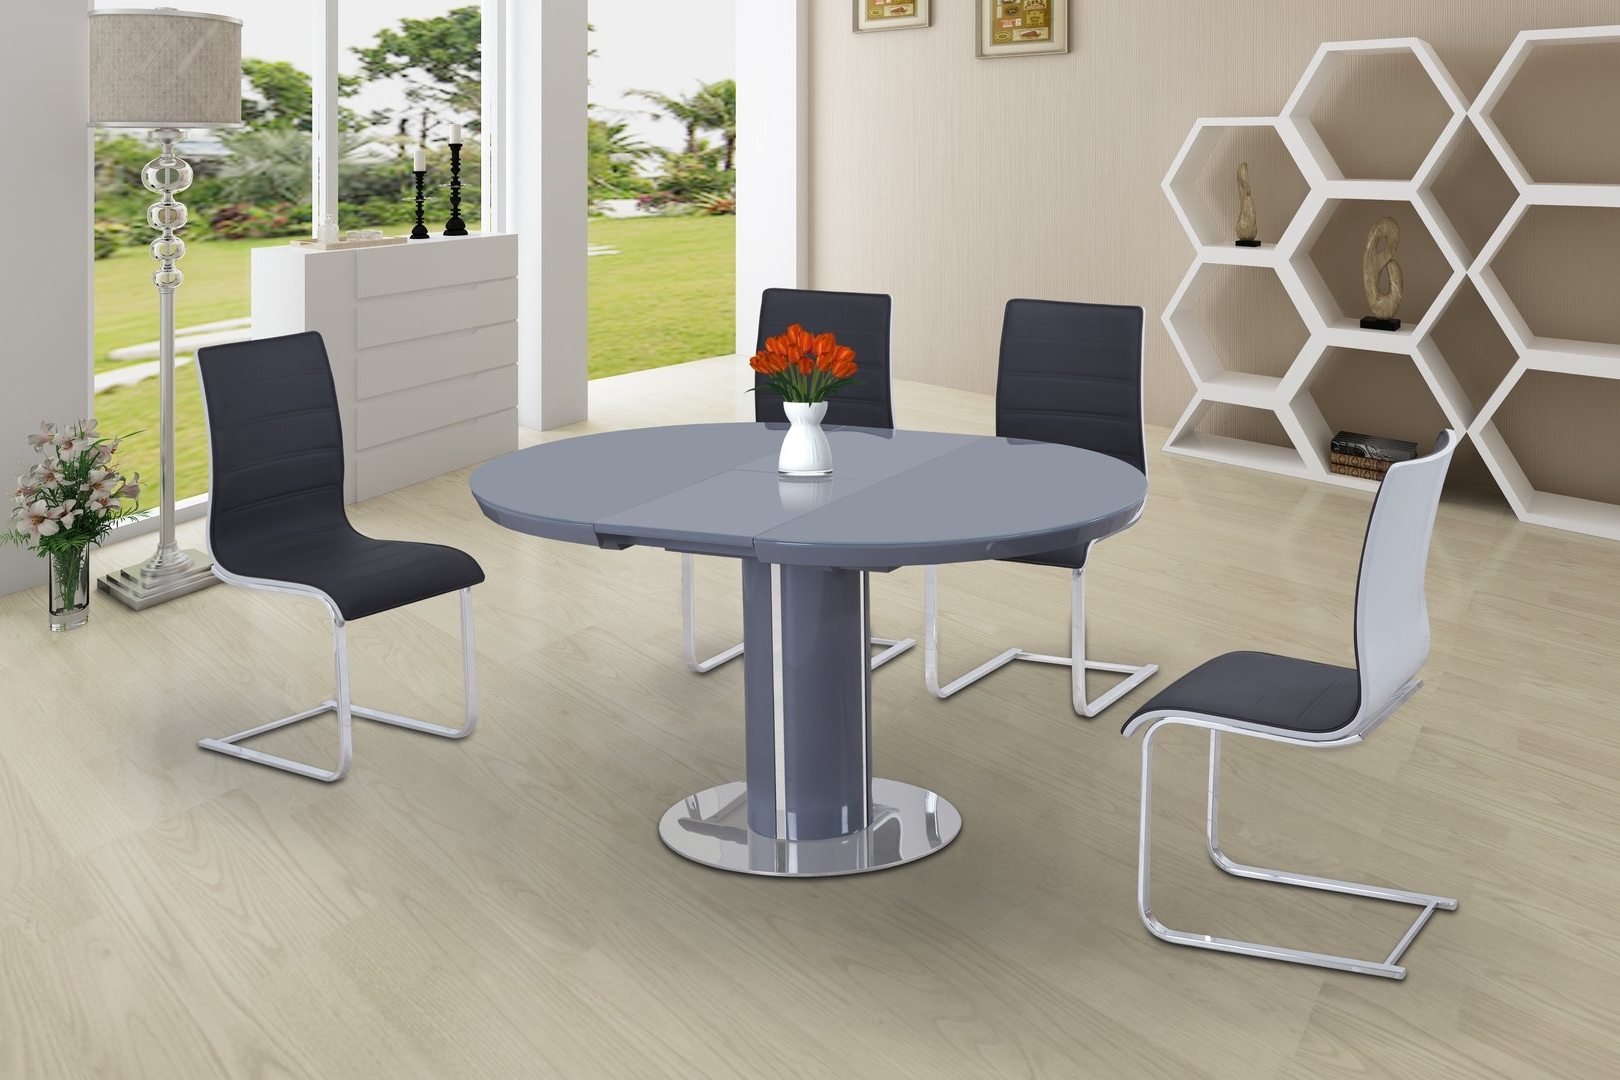 Round High Gloss Glass Dining And 6 Grey With White Chairs Within Well Known Grey Glass Dining Tables (View 21 of 25)